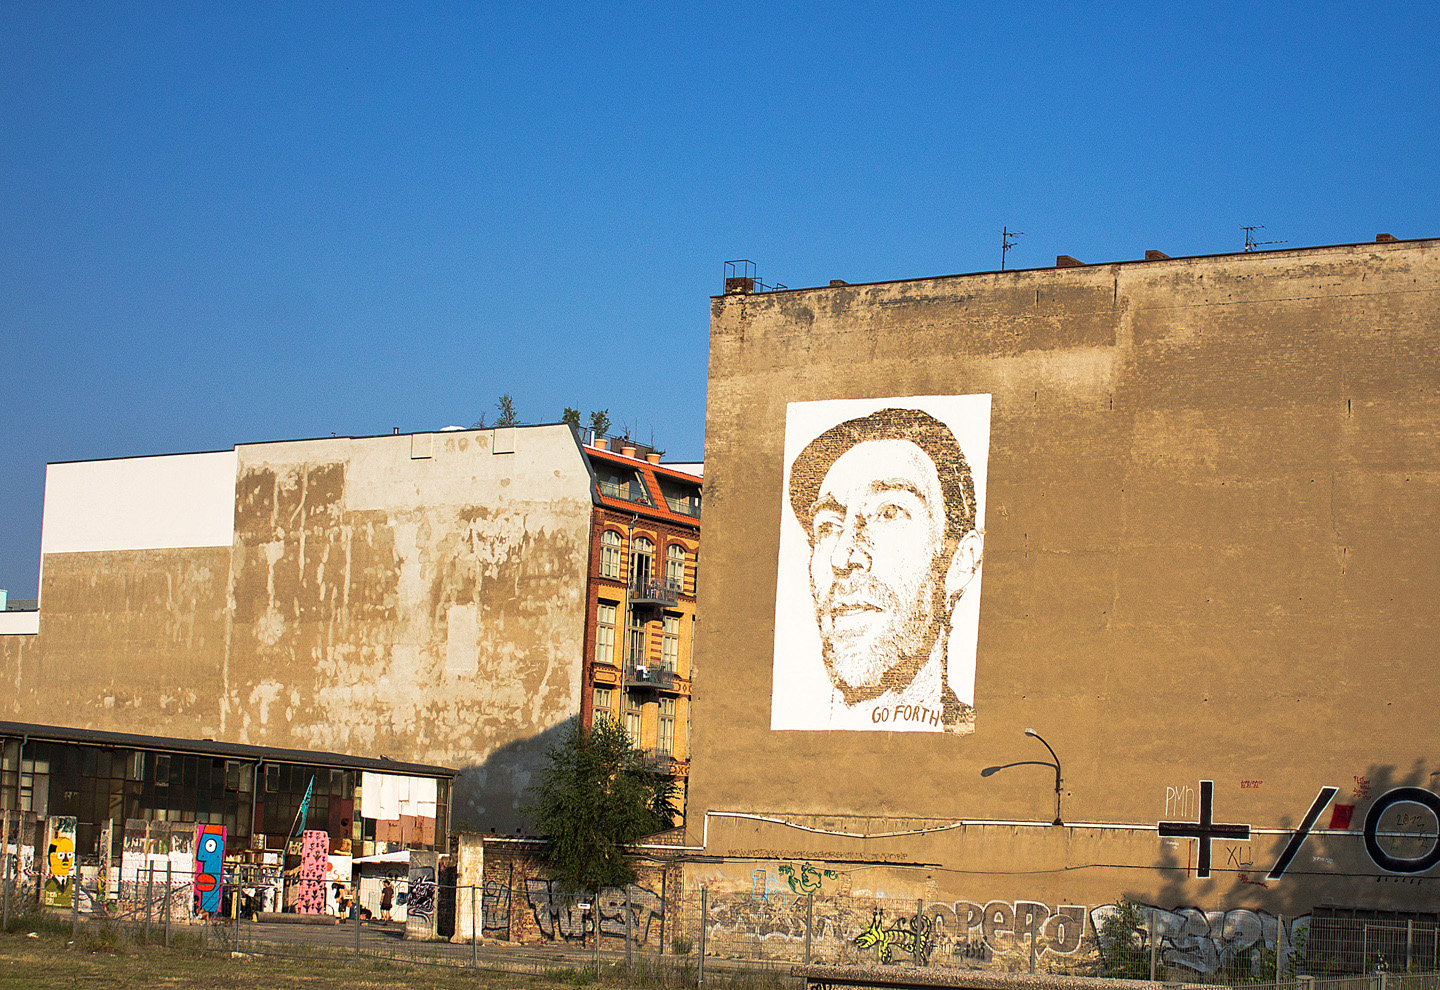 Street Artist: Vhils aka Alexandre Farto hits Berlin Portrait of Joe Hatchiban - Fotos and Reort by: Street Art Berlin